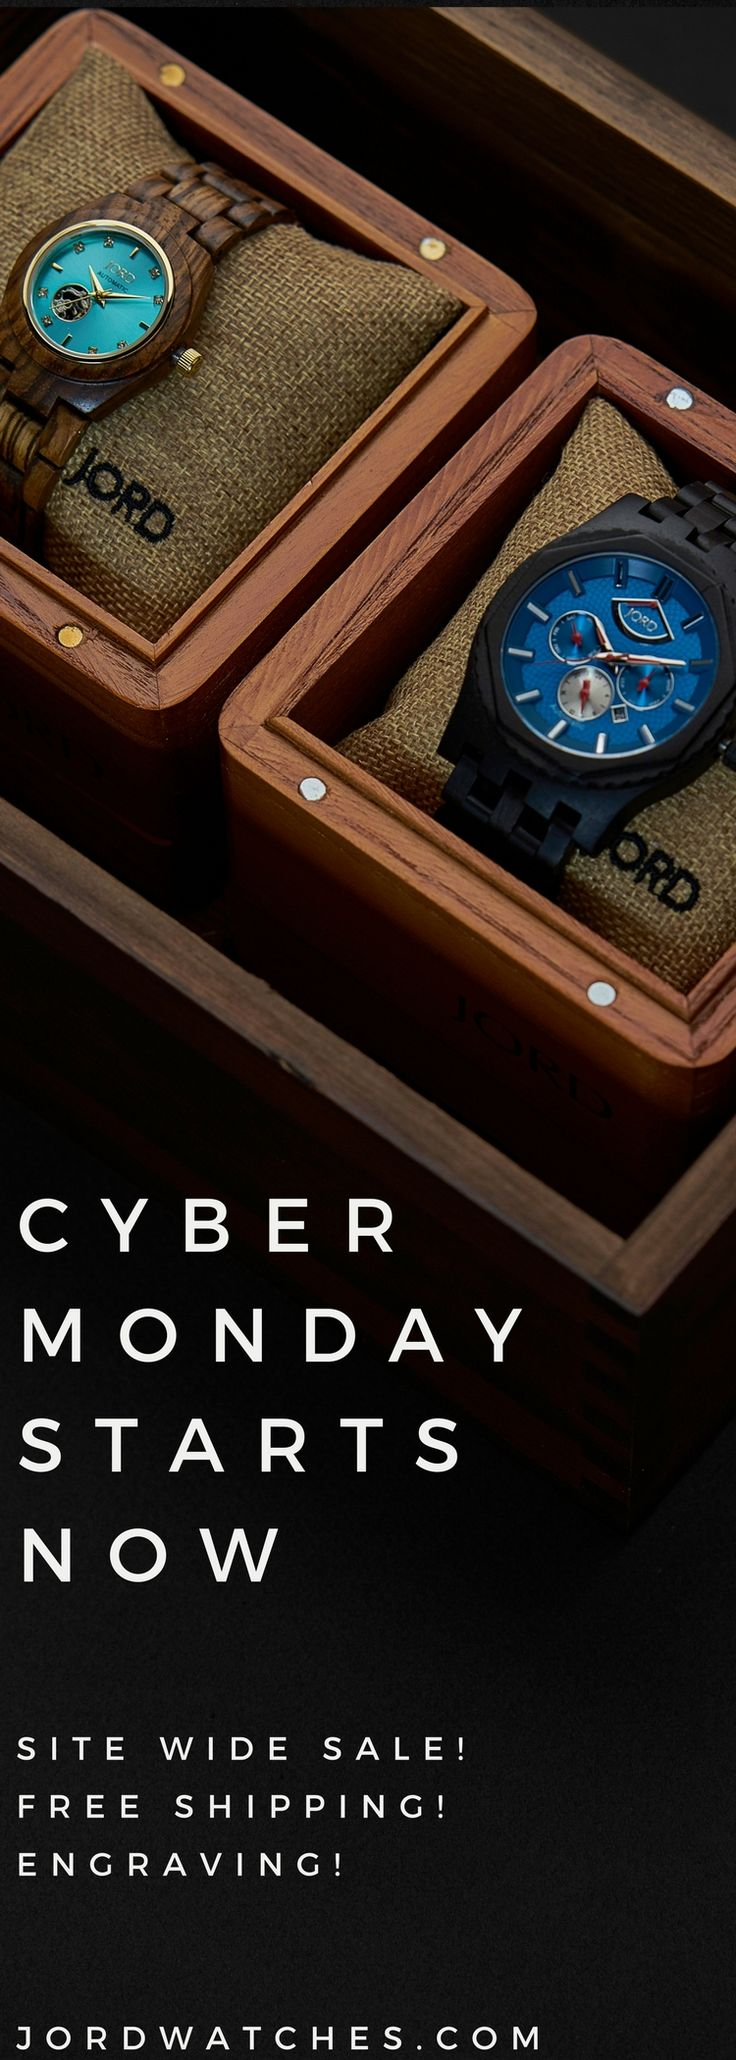 use code: CYBERSALE17 at checkout for 15% off all watches and engraving services!